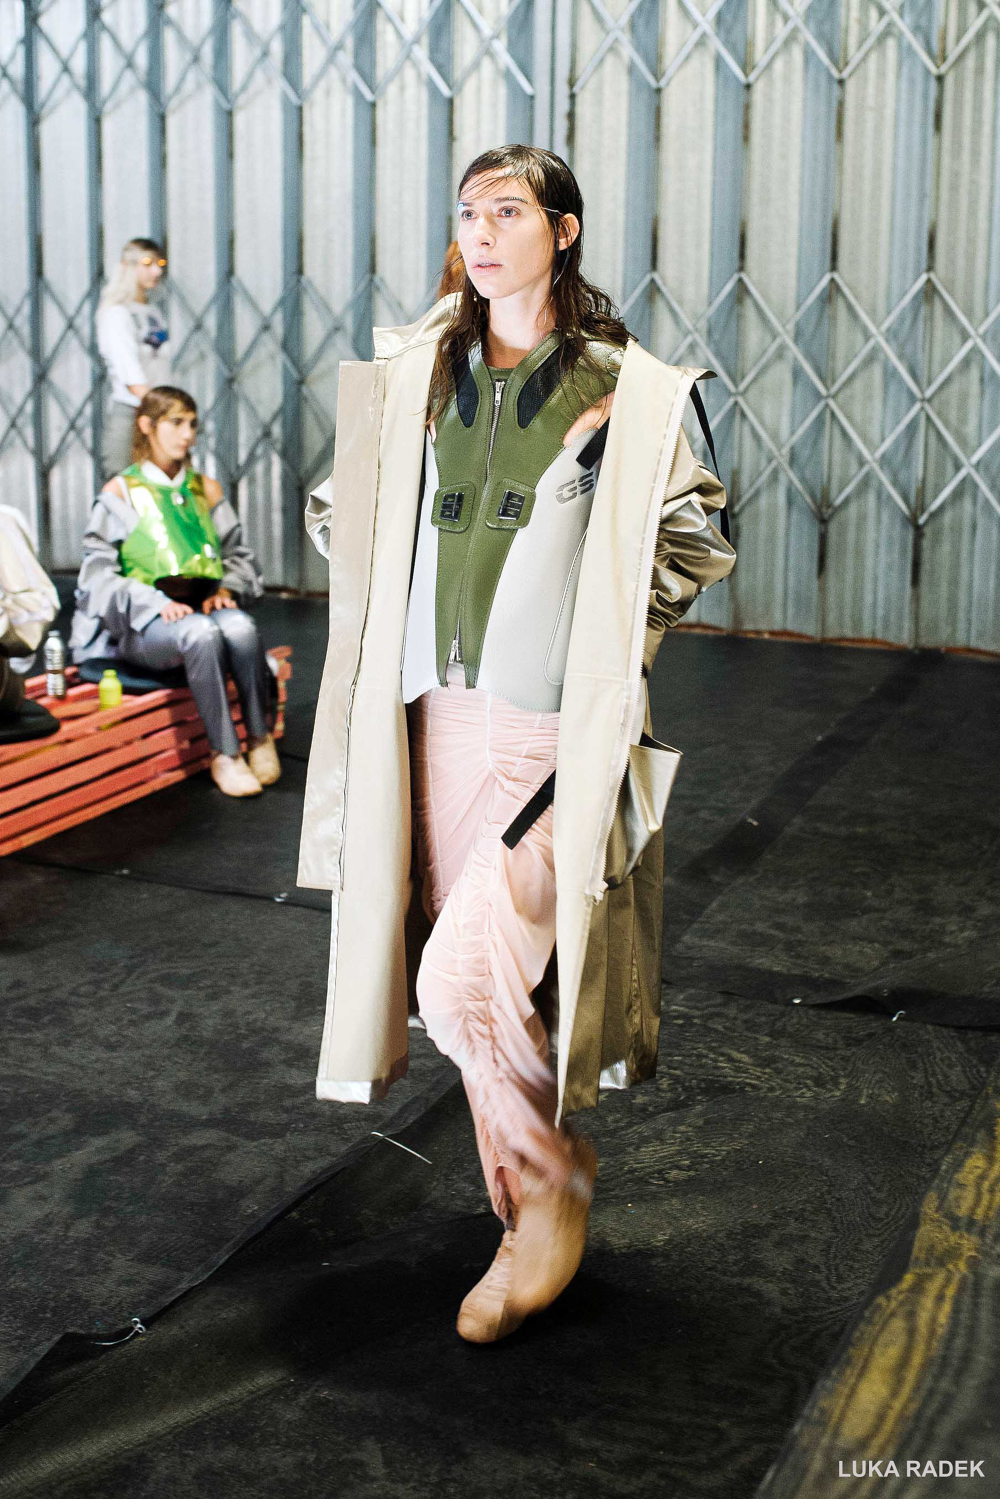 TIMOTHY-PRES-SS18-LOOKS1-WEB-copy_1000.png